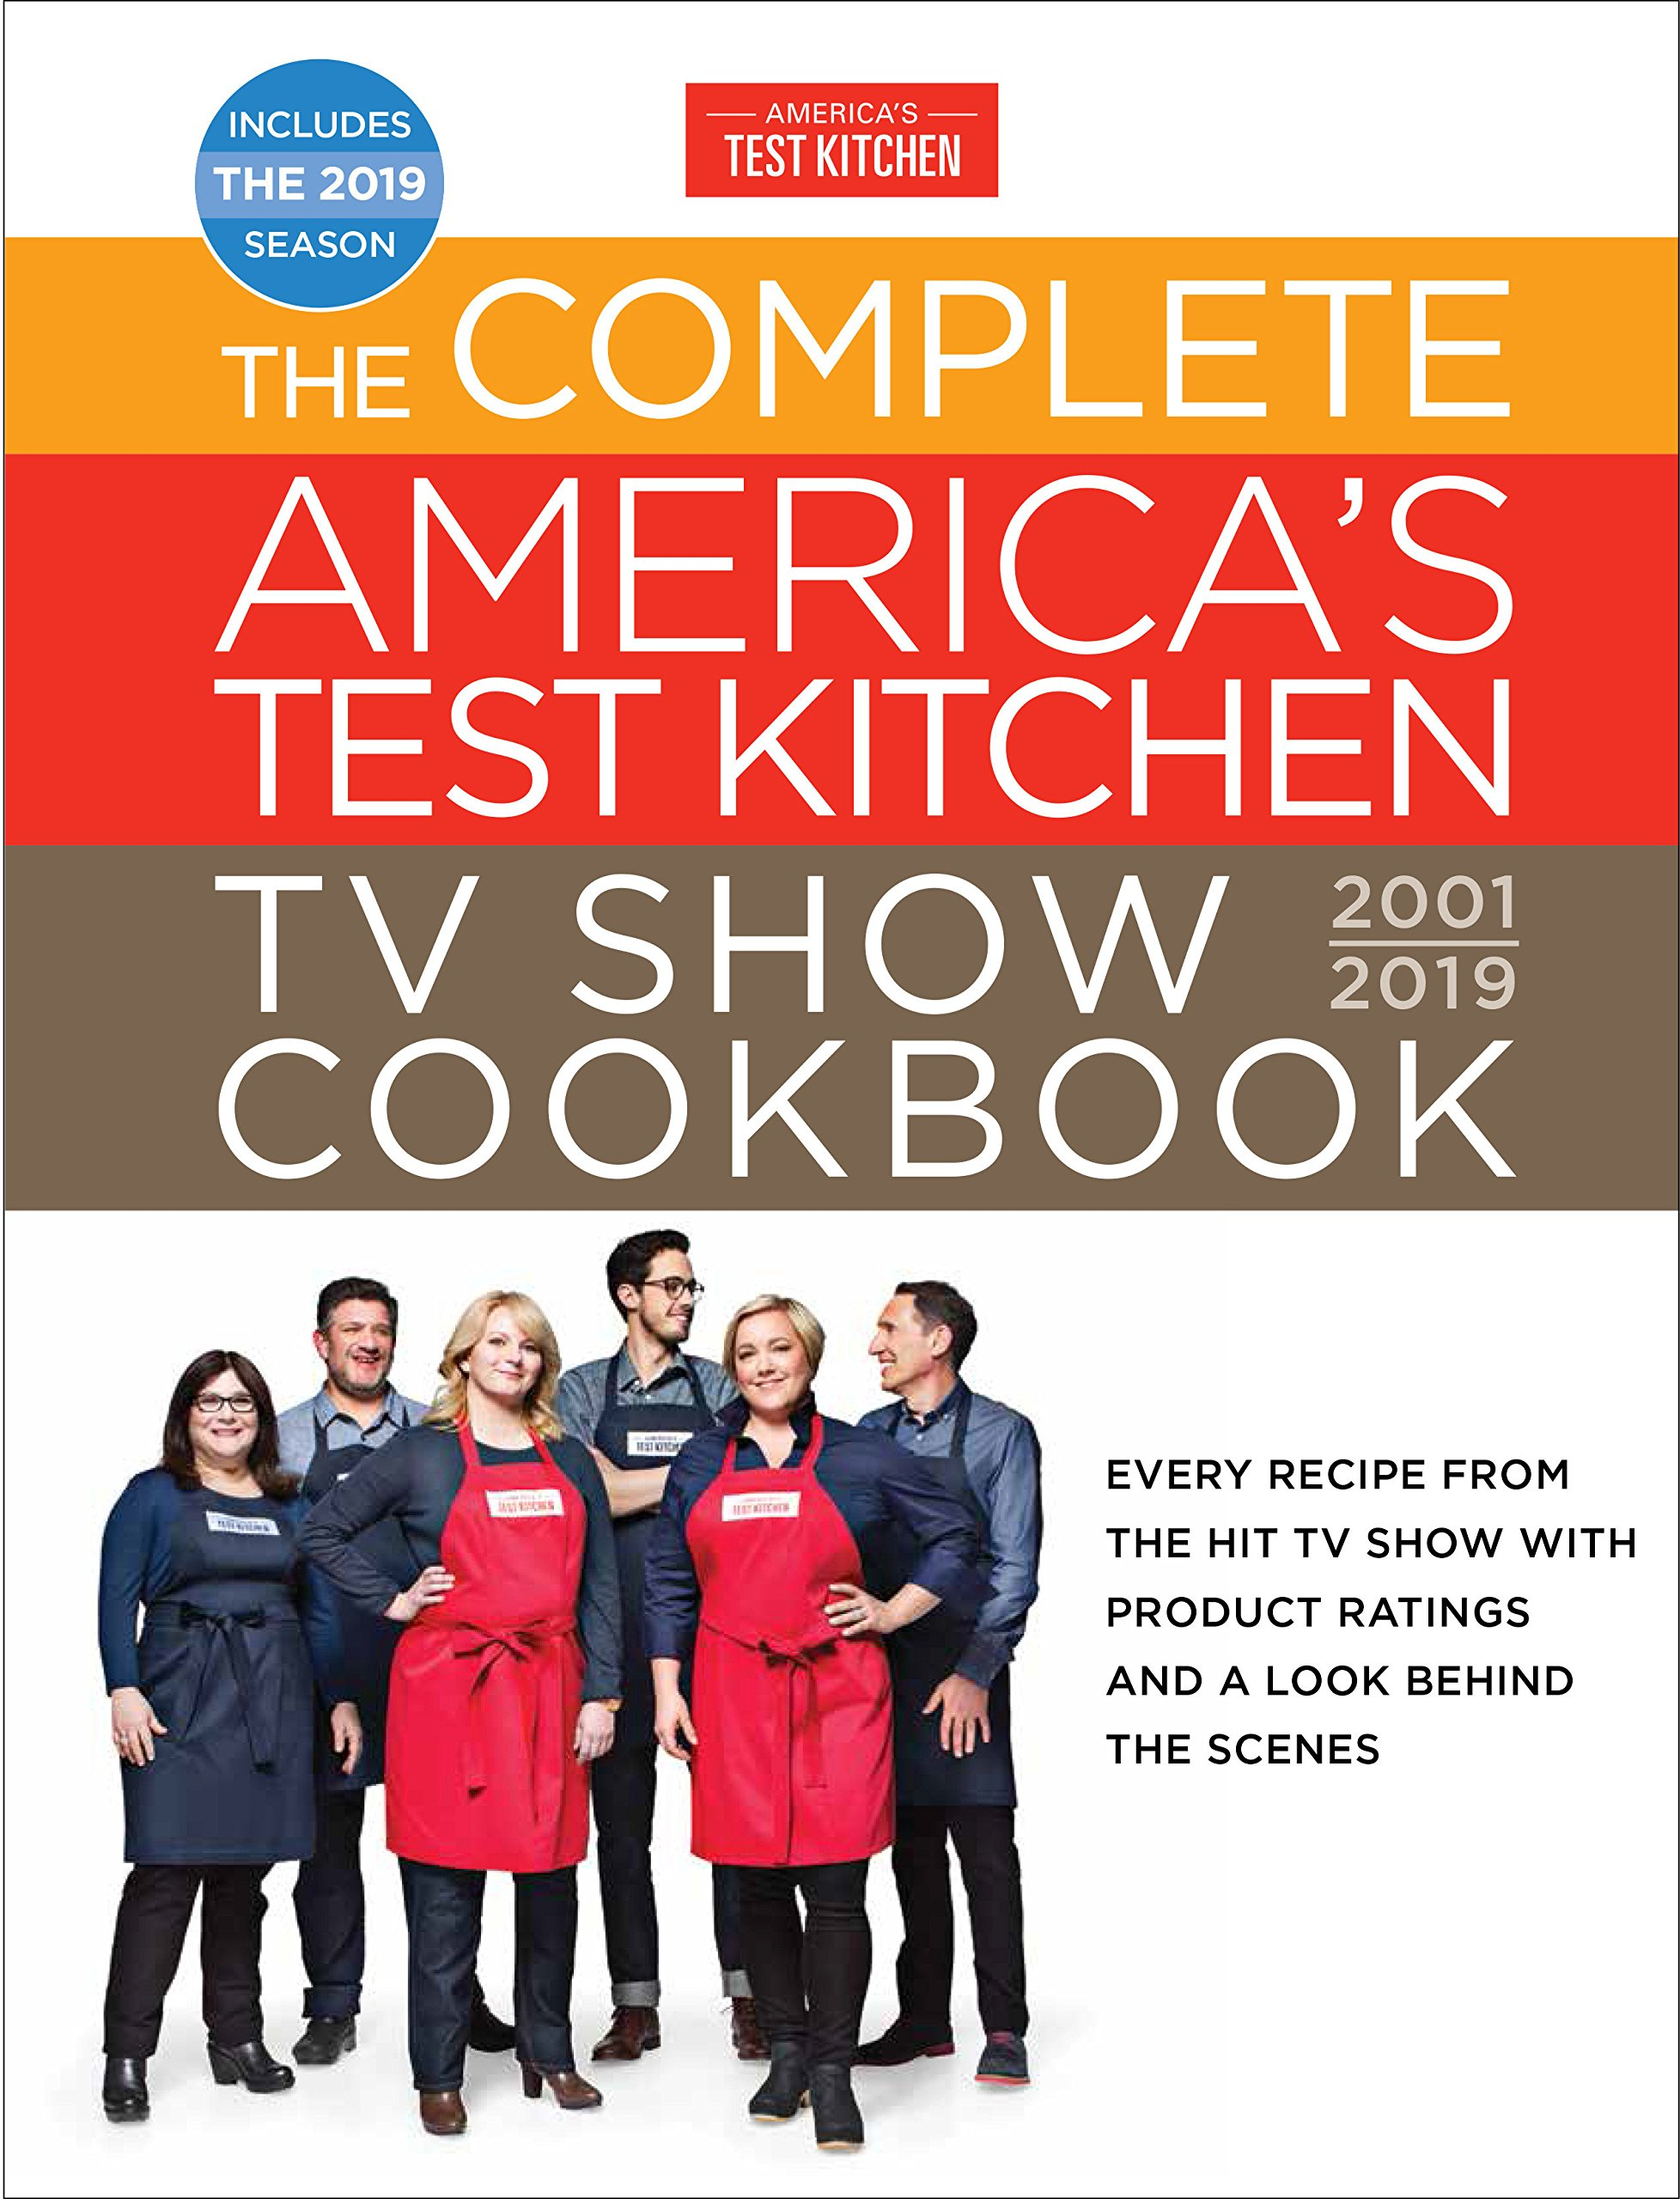 The Complete America's Test Kitchen TV Show Cookbook 2001 - 2019: Every Recipe from the Hit TV Show with Product Ratings and a Look Behind the Scenes by America's Test Kitchen